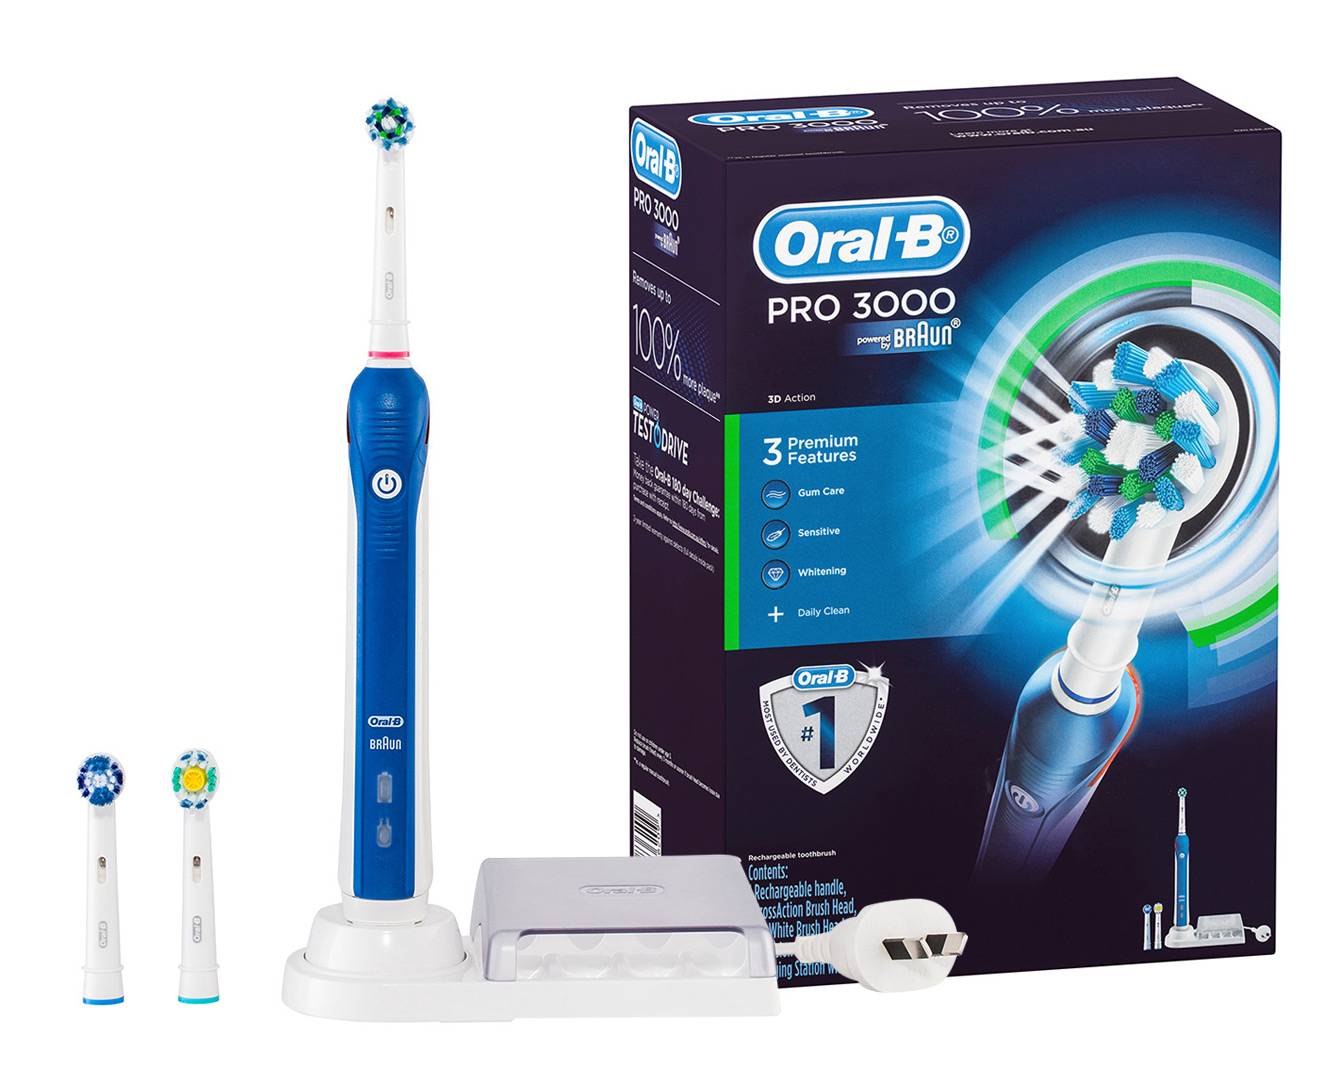 Oral-B-Pro-3000-Rechargeable-Electric-Toothbrush-Kit